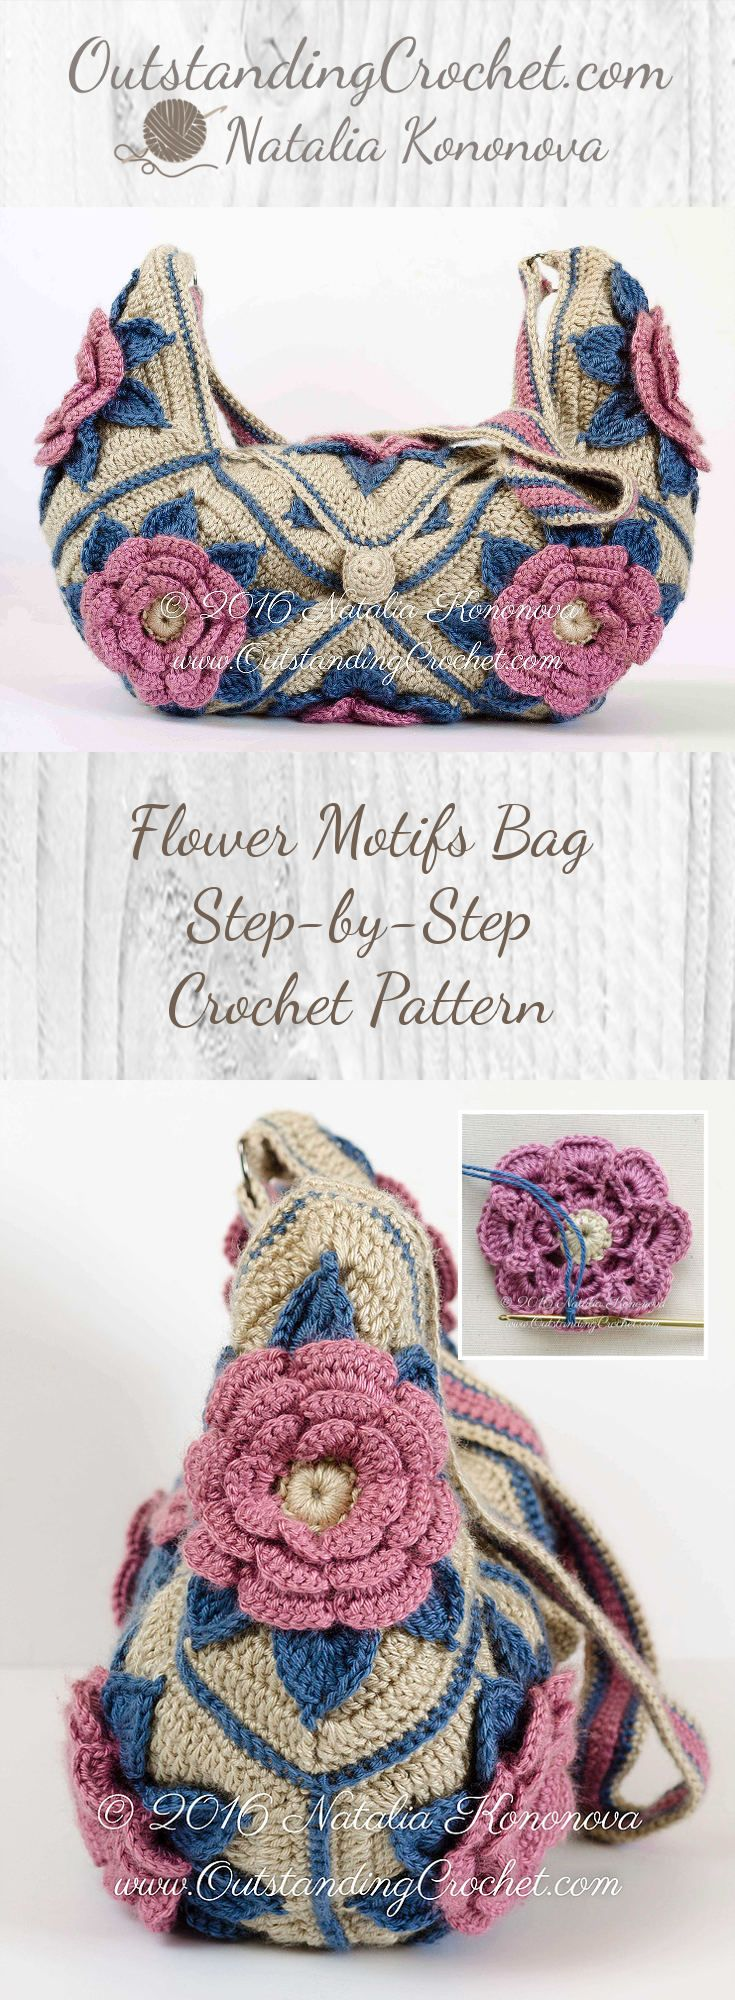 Check it out! Patterns for your outstanding crochet! | Crochet 3 ...